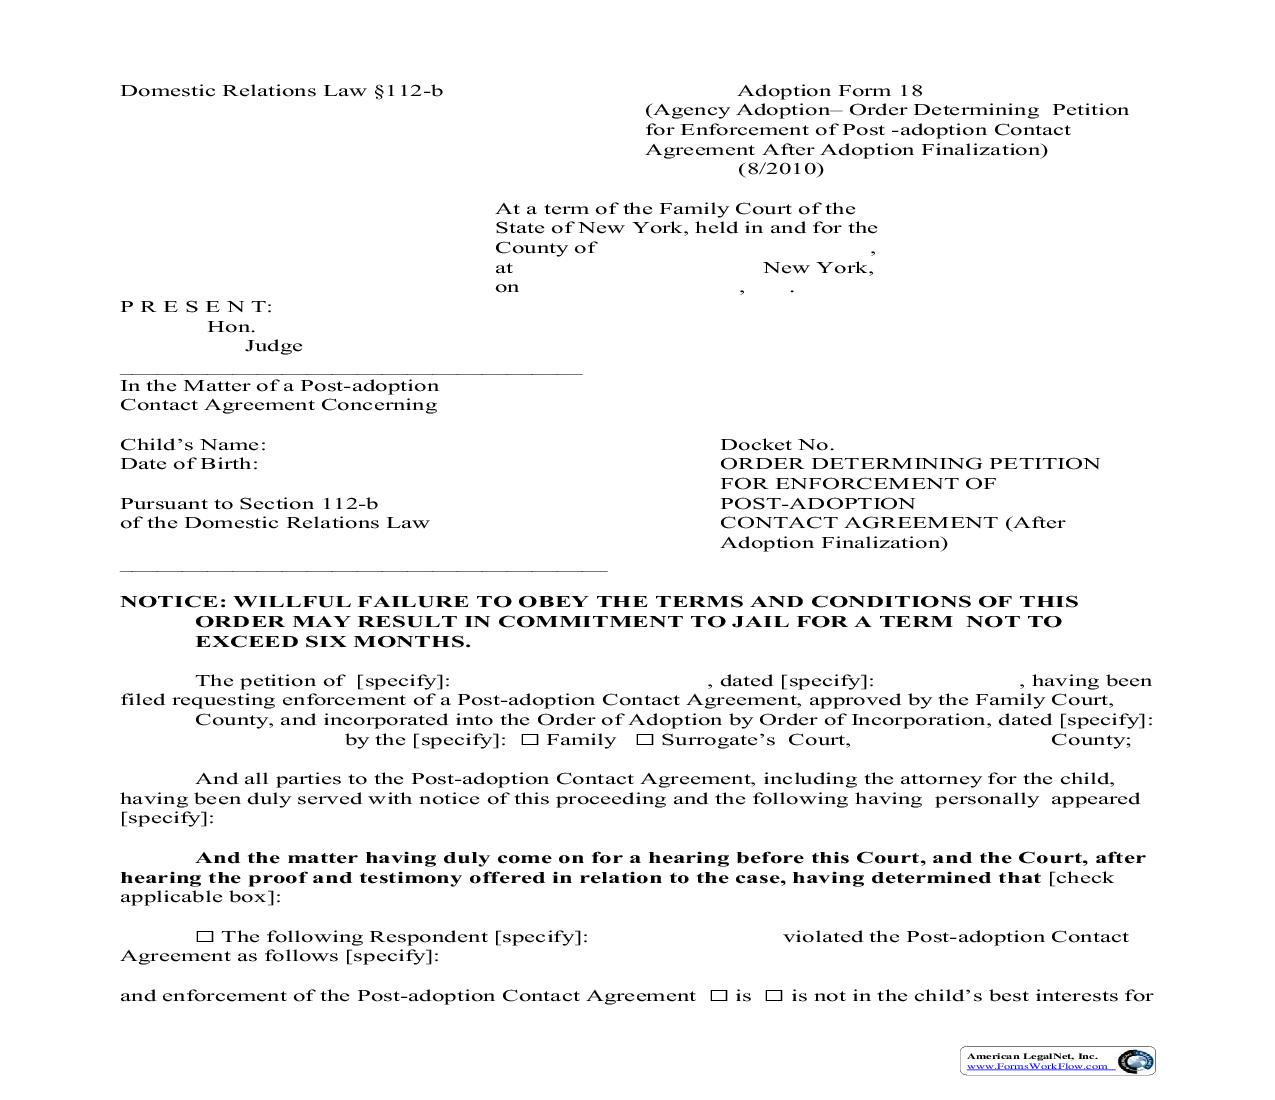 Order Determing Petition For Enforcement Of Post-Adoption Contact Agreement (After Finalization) {18} | Pdf Fpdf Doc Docx | New York